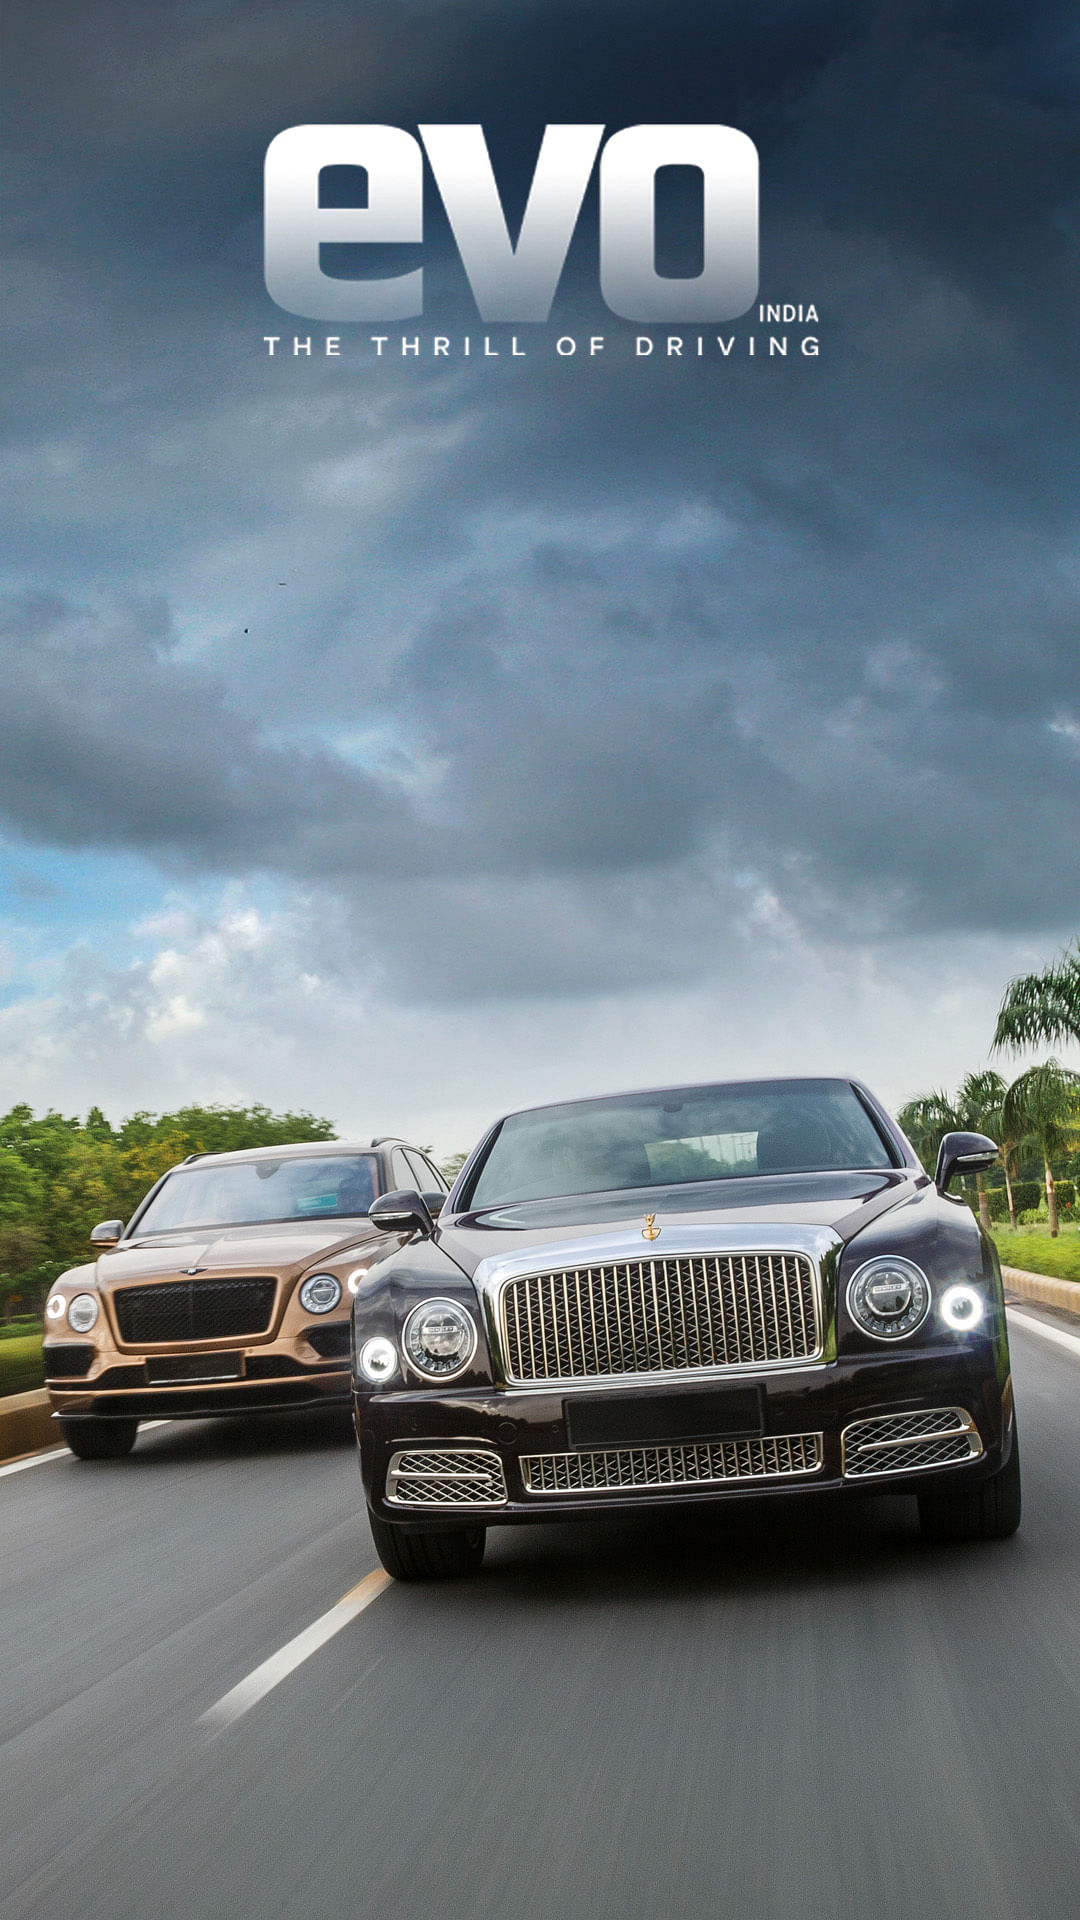 Every Bentley is hand-built by 'craftspeople' in Crewe, England and the Mulsanne is the ultimate expression of personalisation.